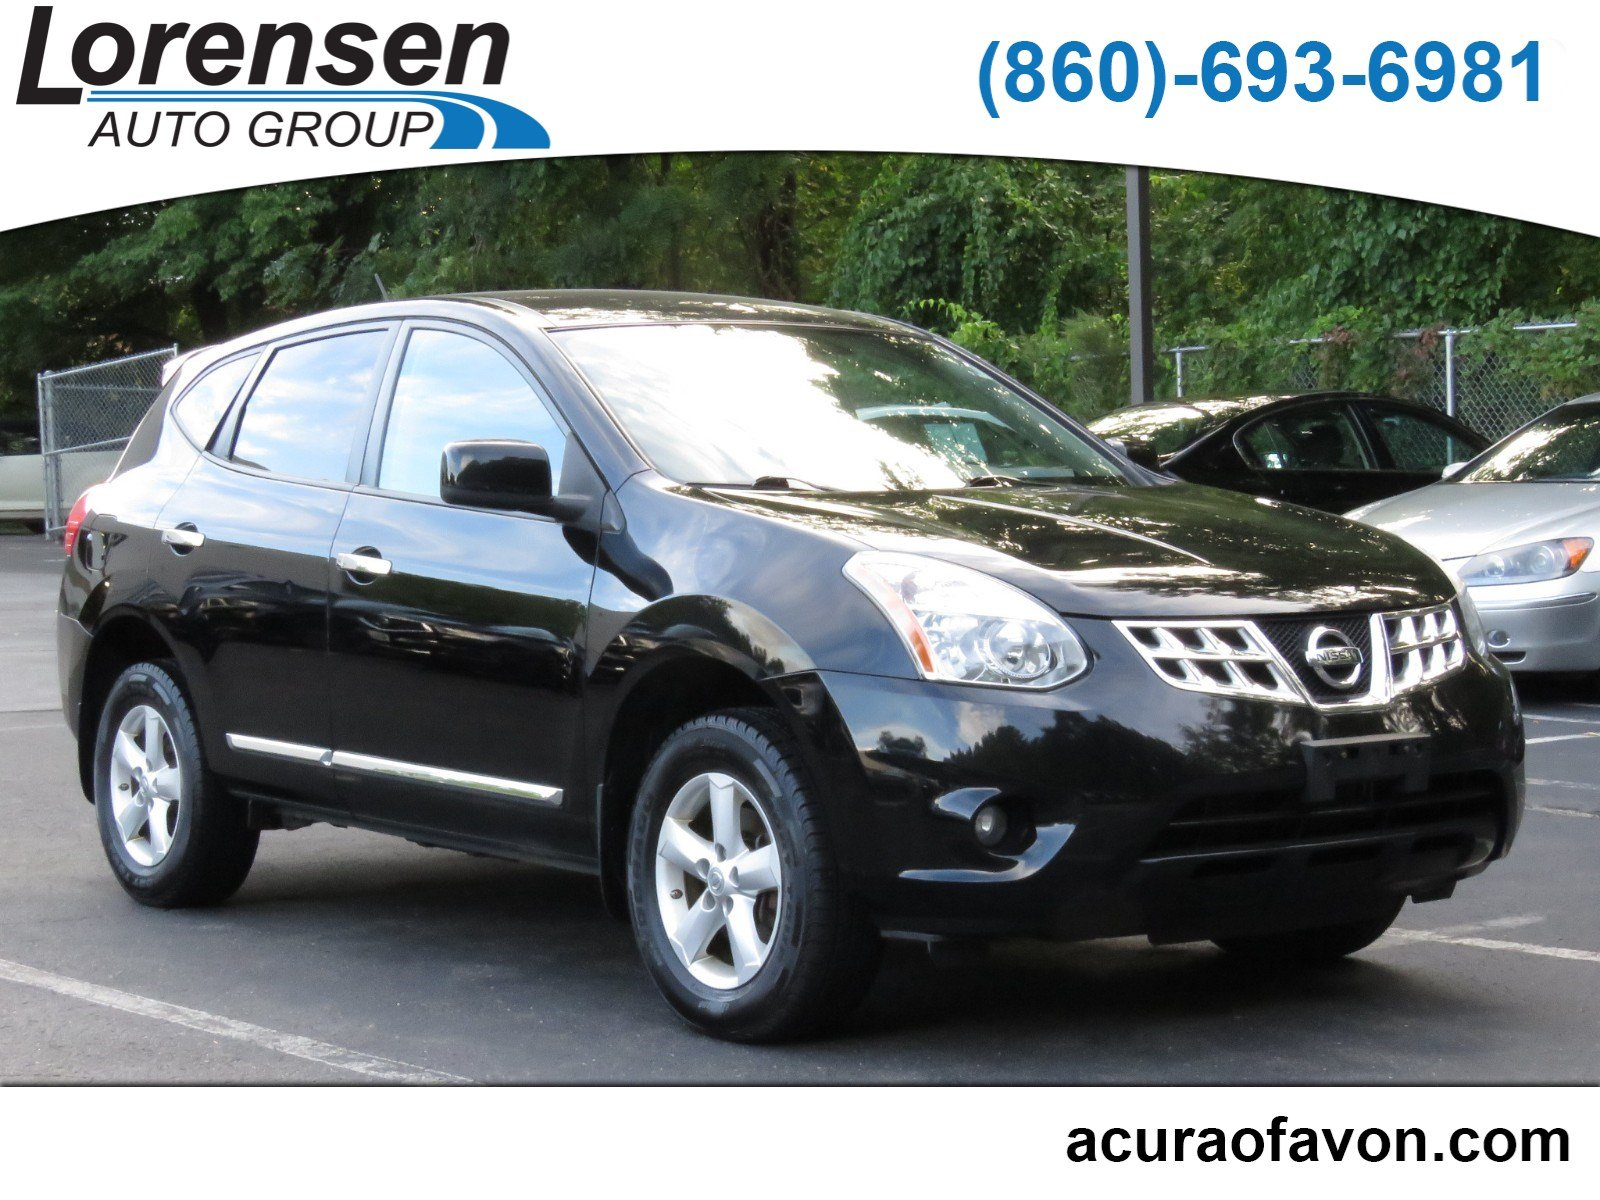 Wonderful Pre Owned 2013 Nissan Rogue S